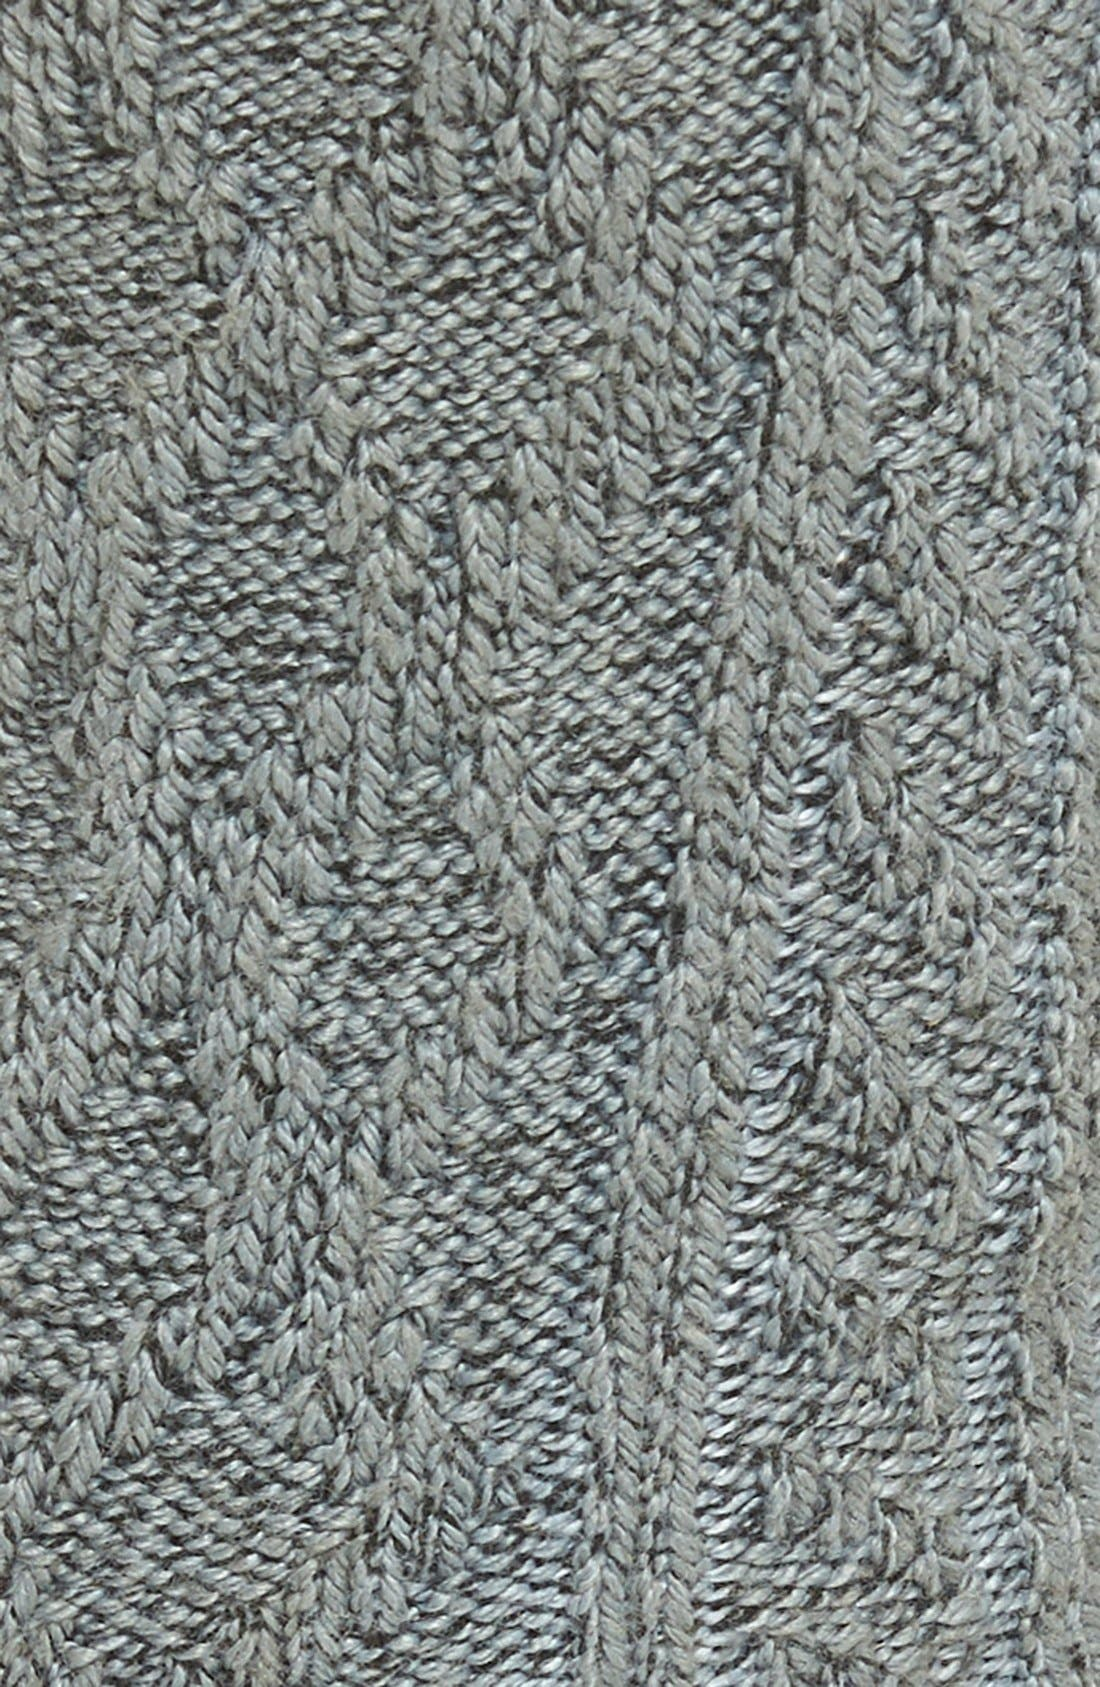 Marled Cable Crew Socks,                             Alternate thumbnail 2, color,                             Charcoal